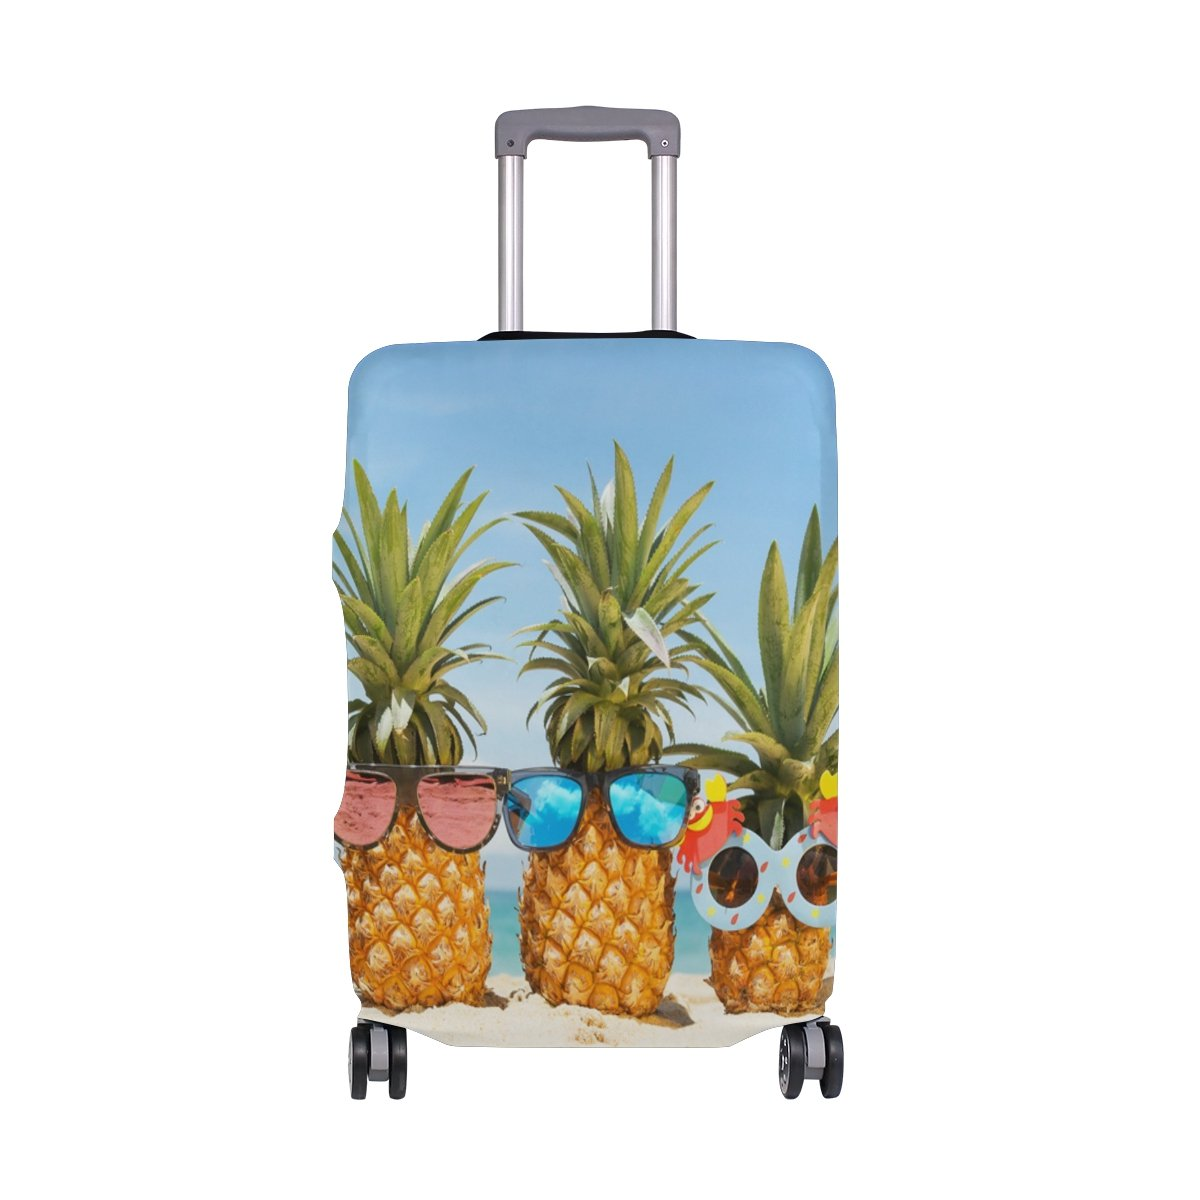 My Daily Sunglasses Pineapples Summer Beach Luggage Cover Fits 24-26 Inch Suitcase Spandex Travel Protector M